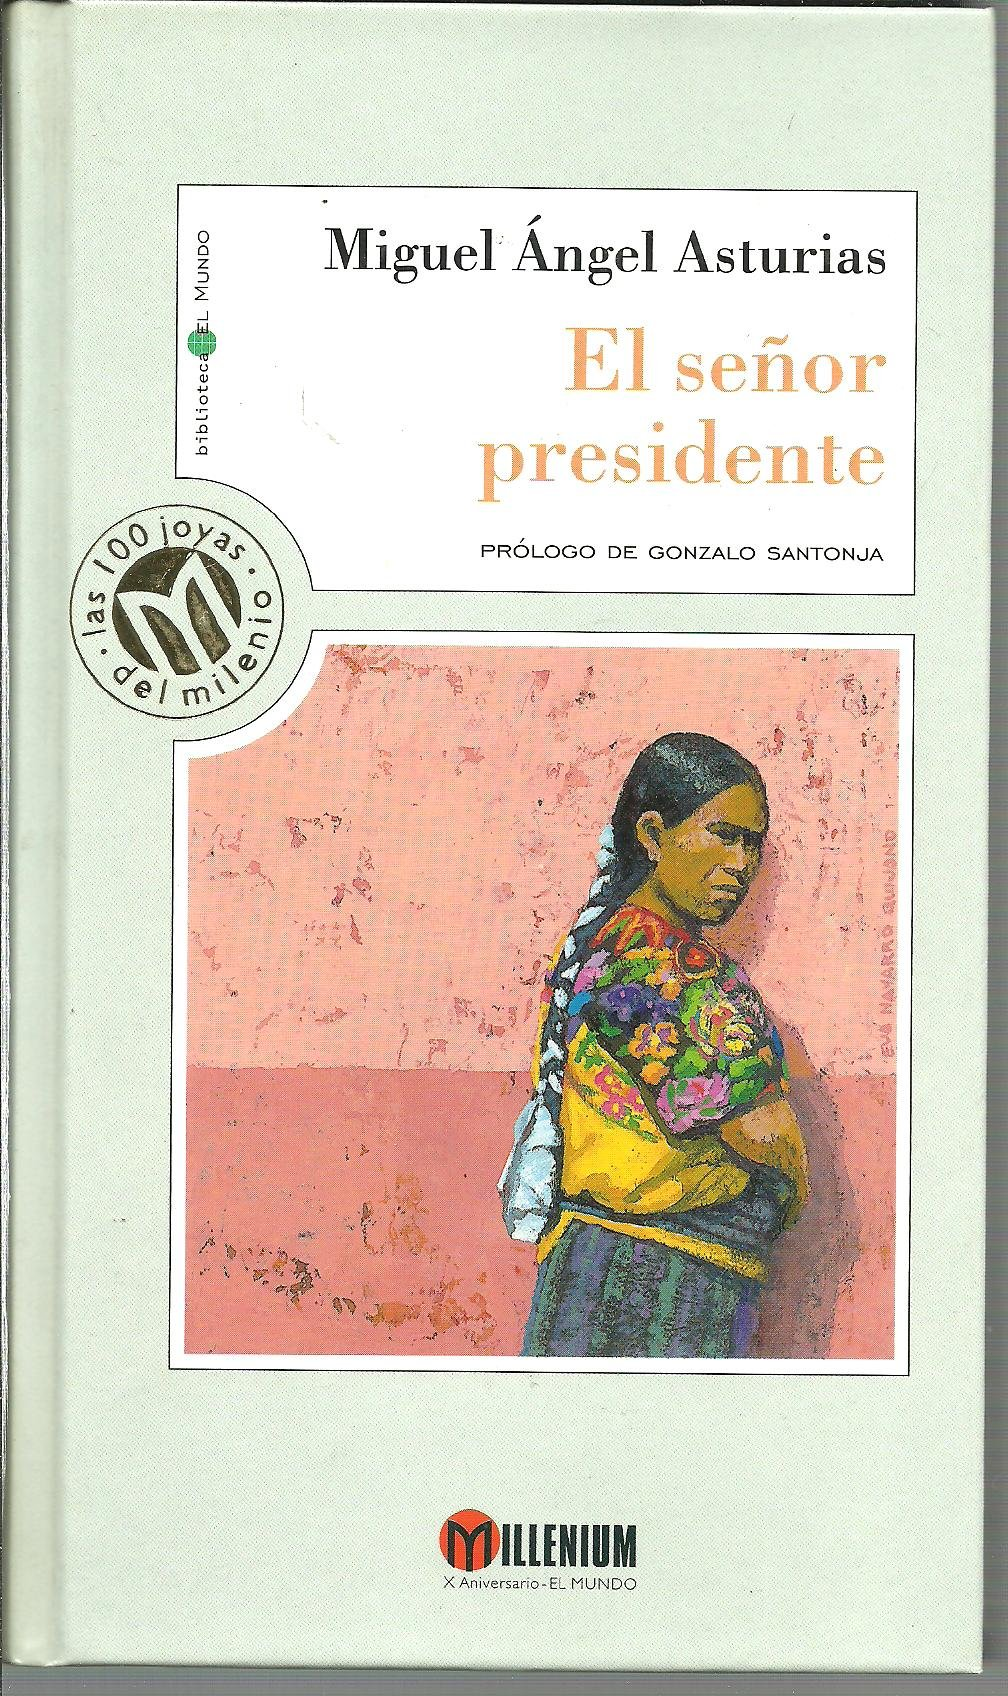 El Senor Presidente (Spanish Edition): Miguel Angel Asturias: 9788481301359: Amazon.com: Books